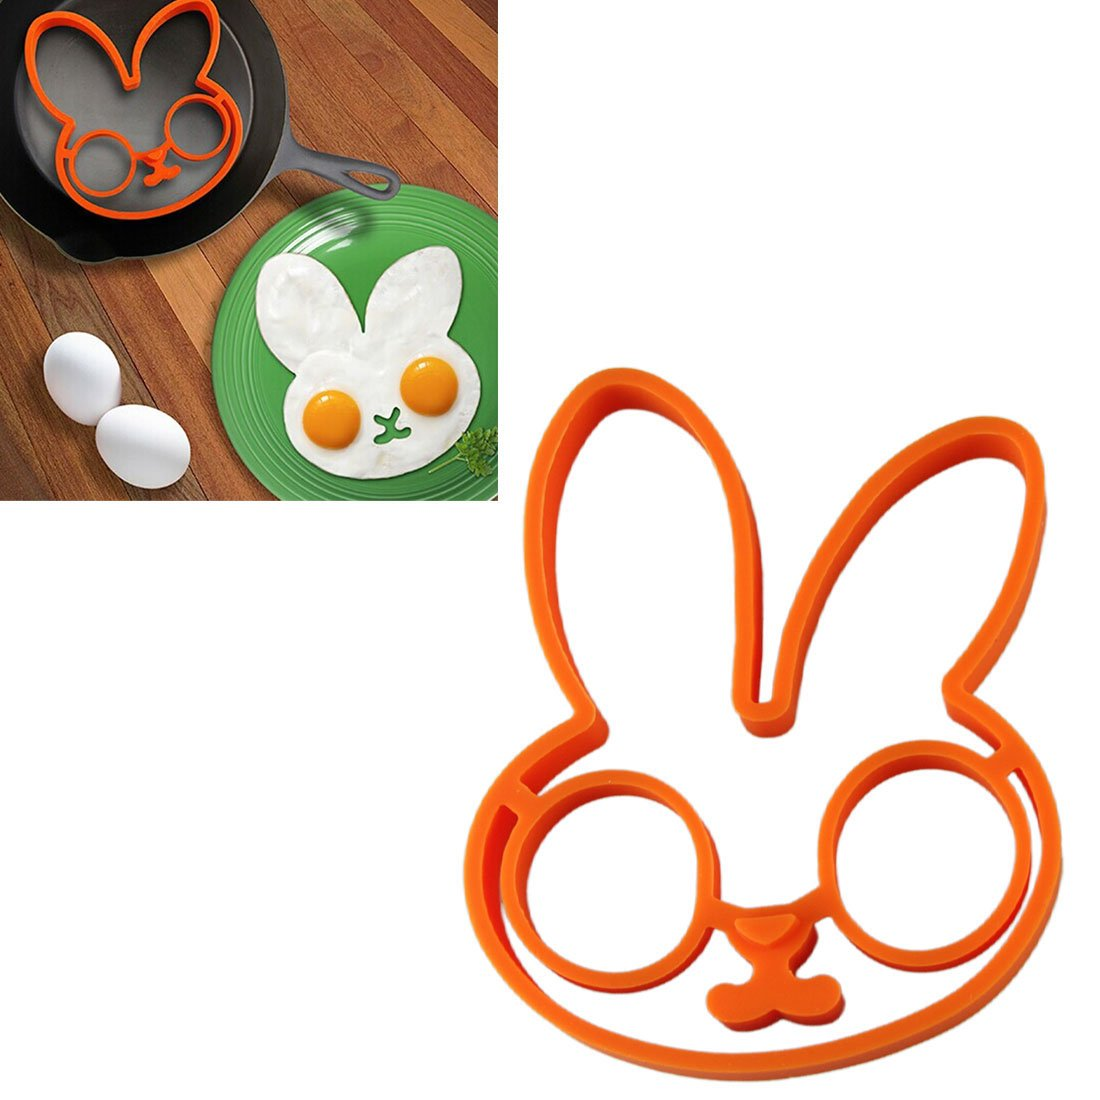 Amazon.com: VoberryNovelty Cute Rabbit egg Shaper Silicone Moulds Cooking Tools Supplies Kitchen Tools: Kitchen & Dining